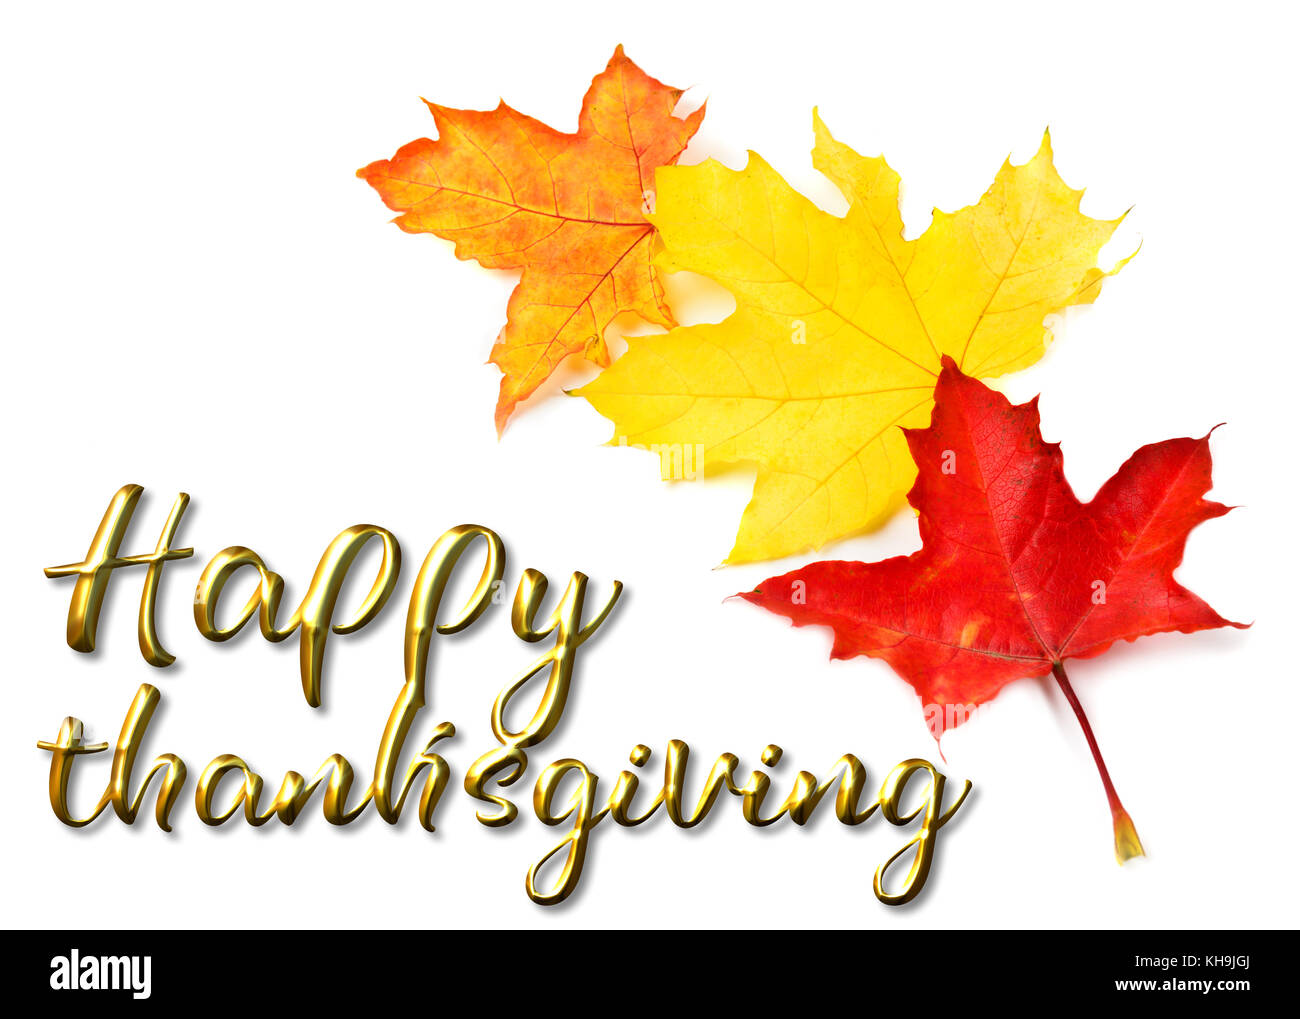 Thanksgiving stock photos thanksgiving stock images alamy happy thanksgiving greeting autumn background of colorfull leaves stock image kristyandbryce Images